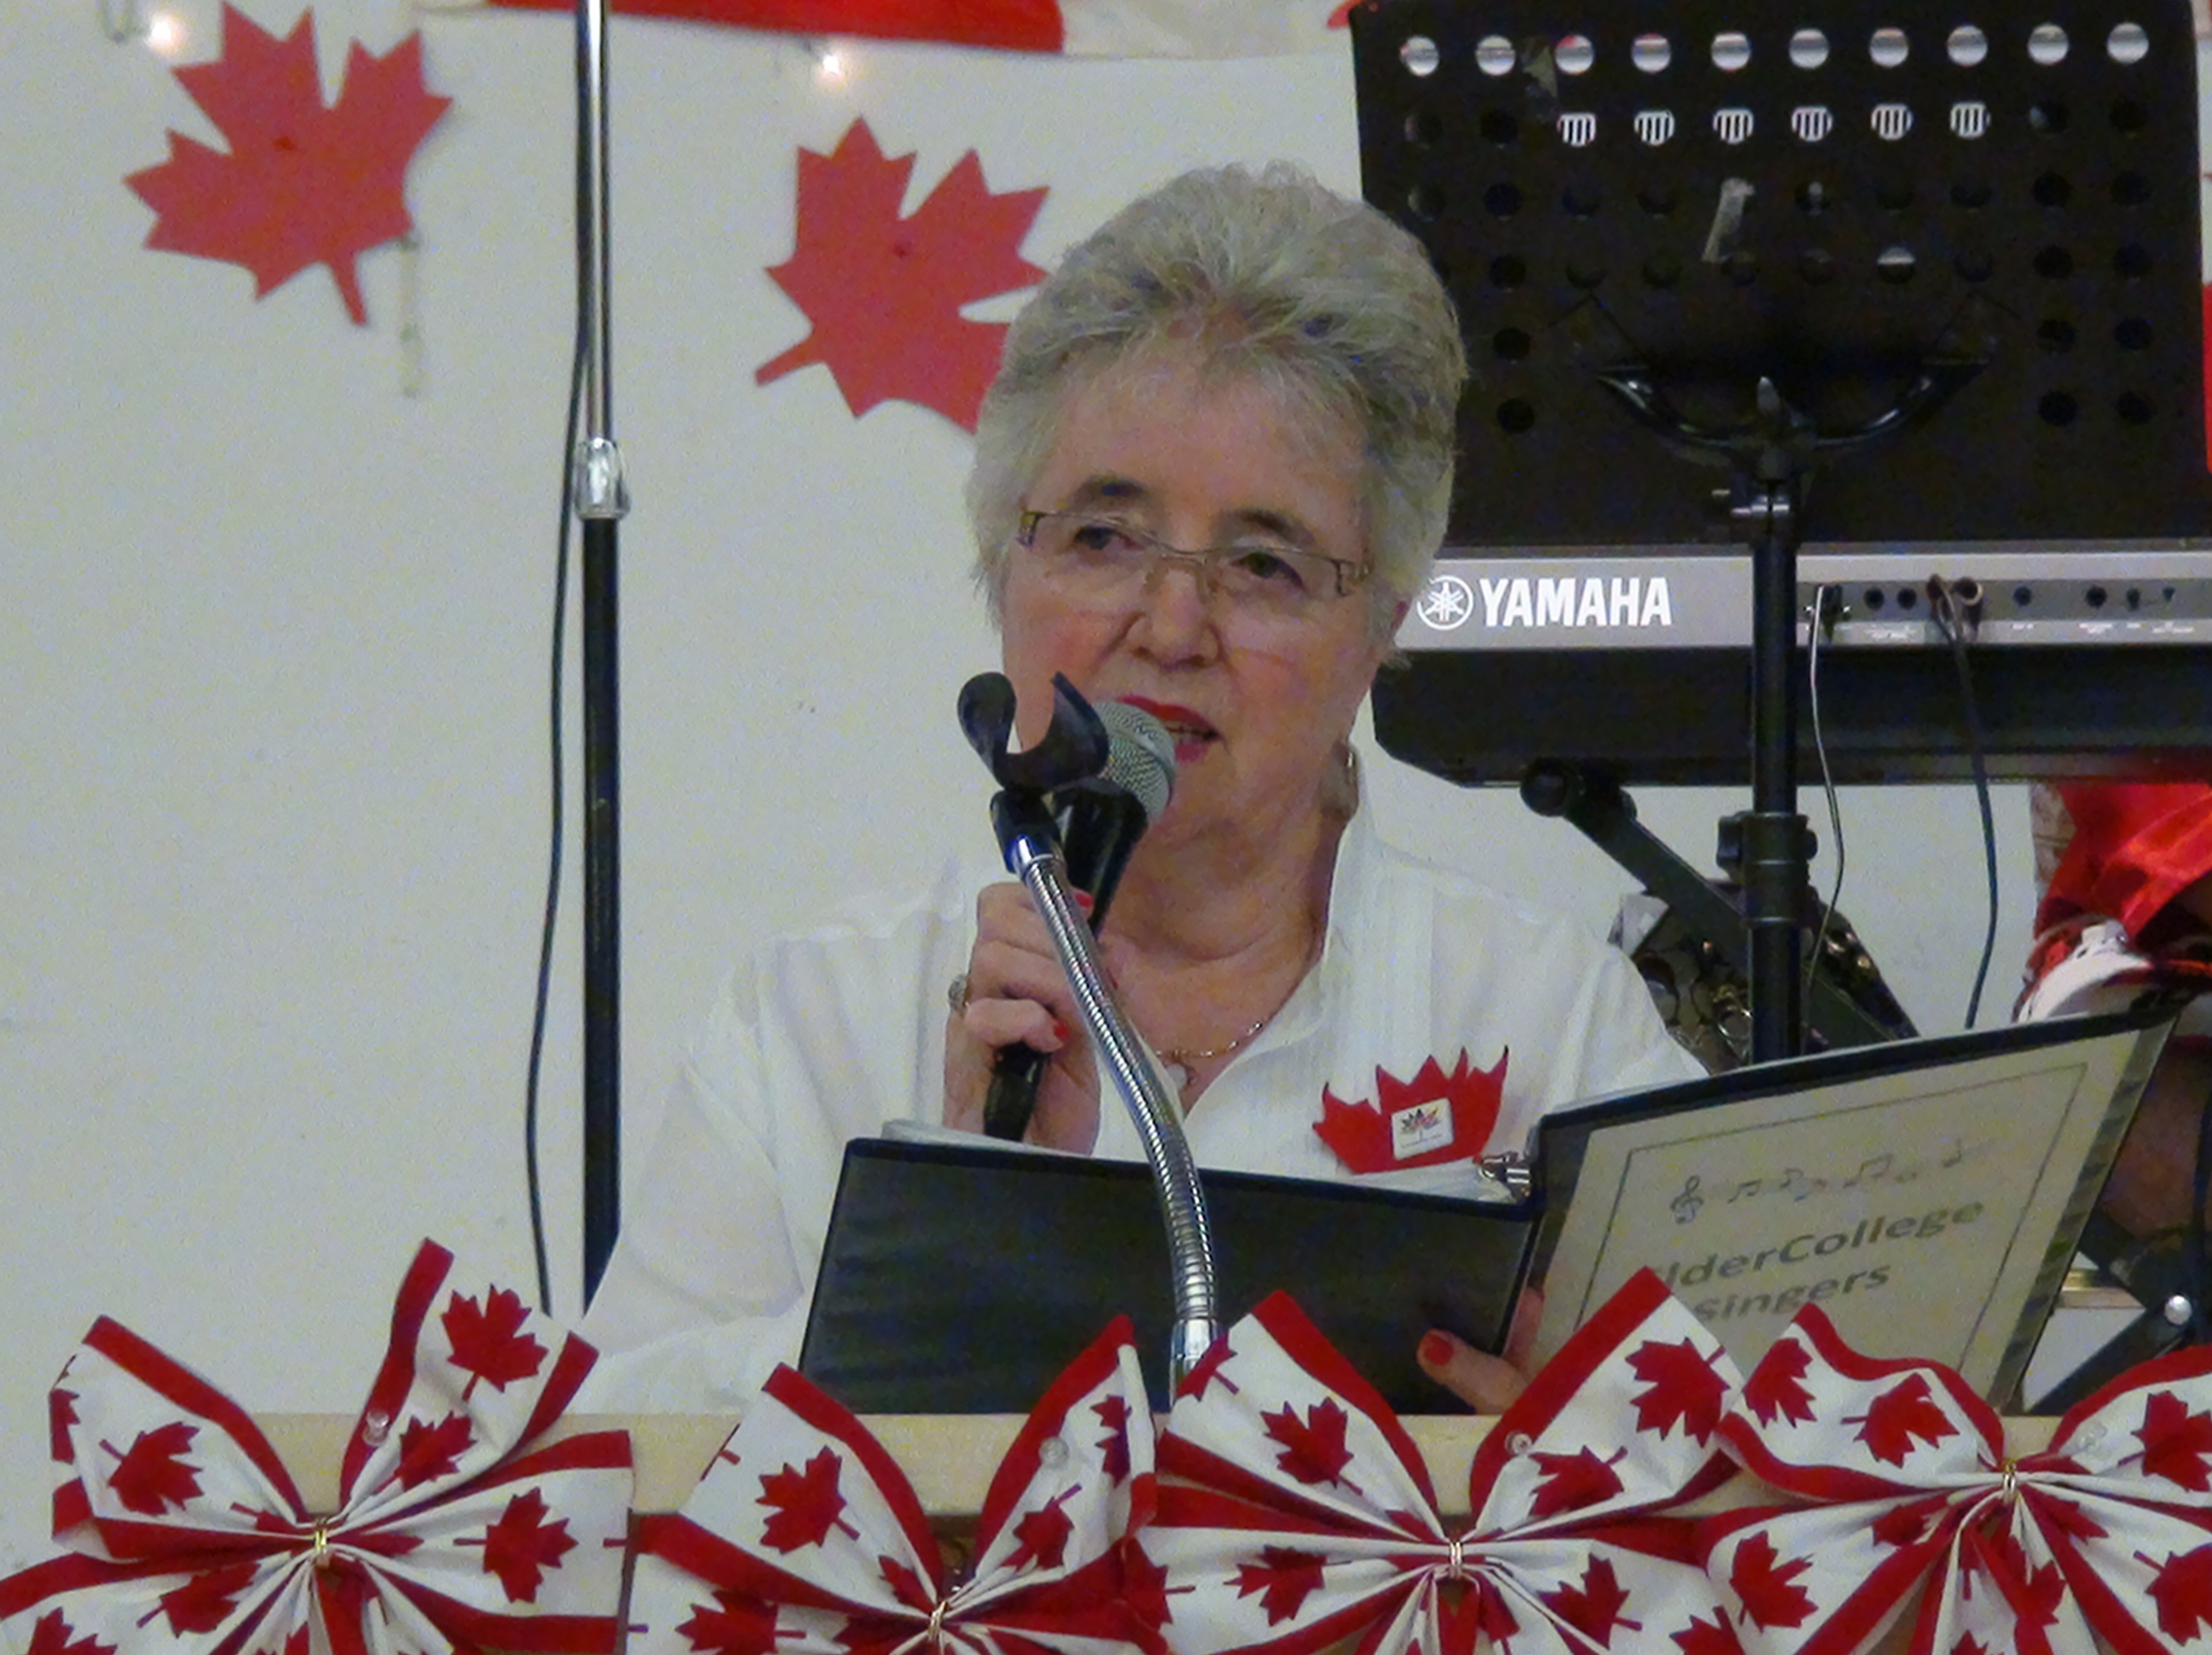 Jean reciting Canada, Our Canada